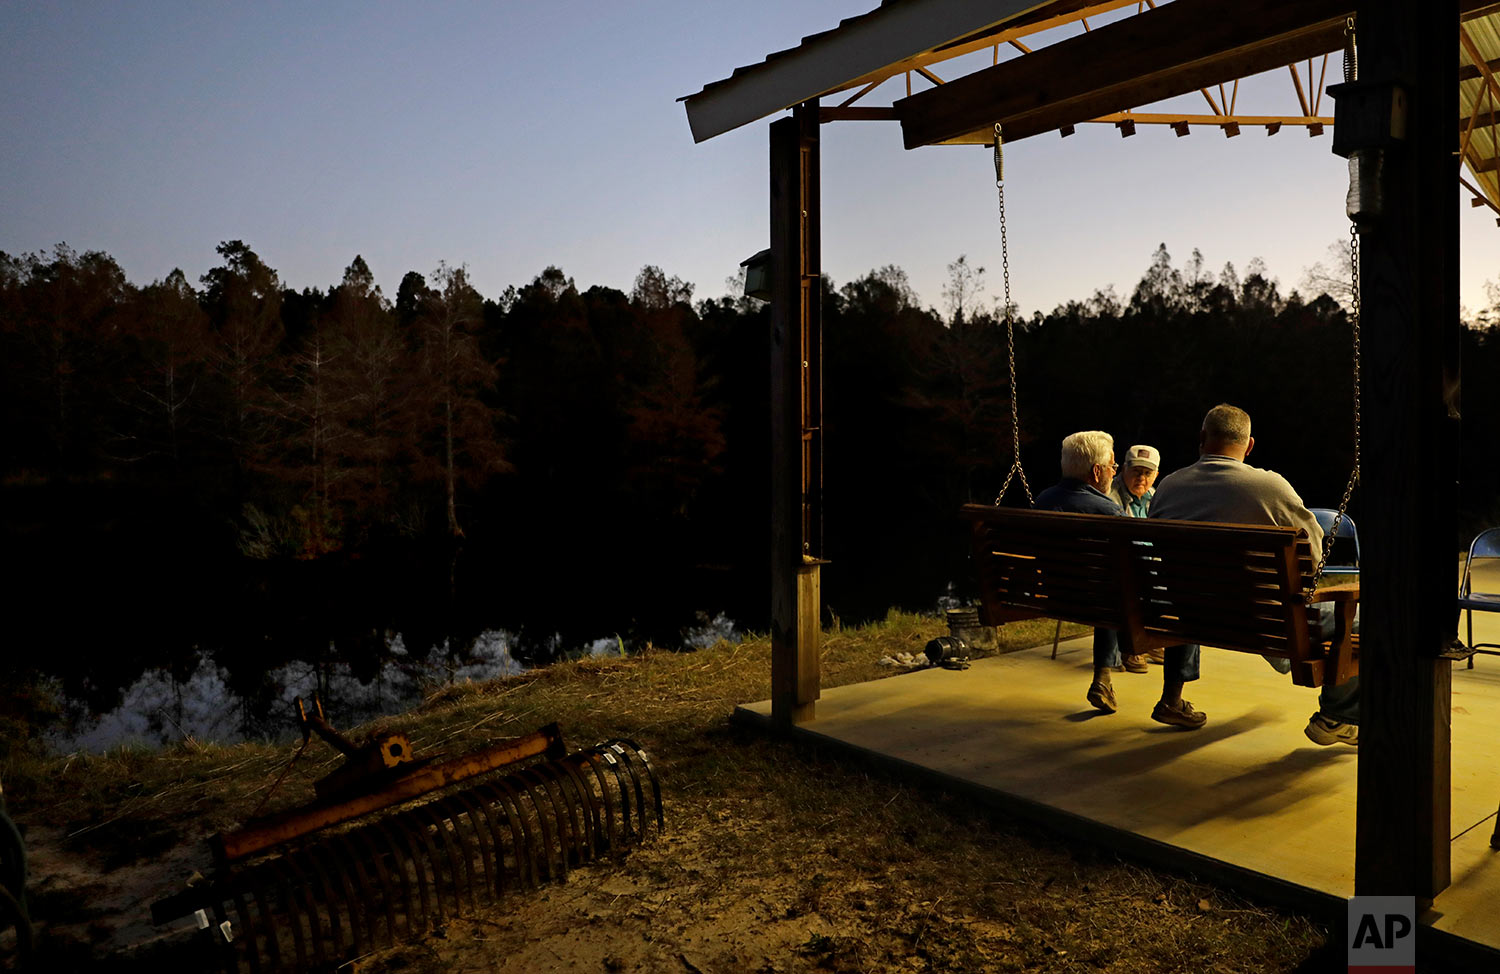 Elton Connor, rear, joins Bruce Kinlaw and Ricky Phillips on the patio before dinner is ready at their weekly gathering at a home in Lumberton, N.C., Thursday, Oct. 26, 2017. Sometimes, the men watch Fox News and talk politics. These days, they turn on football and bemoan the national anthem protests that, to them, represent an unraveling of American values of tradition, patriotism and honor. (AP Photo/David Goldman)